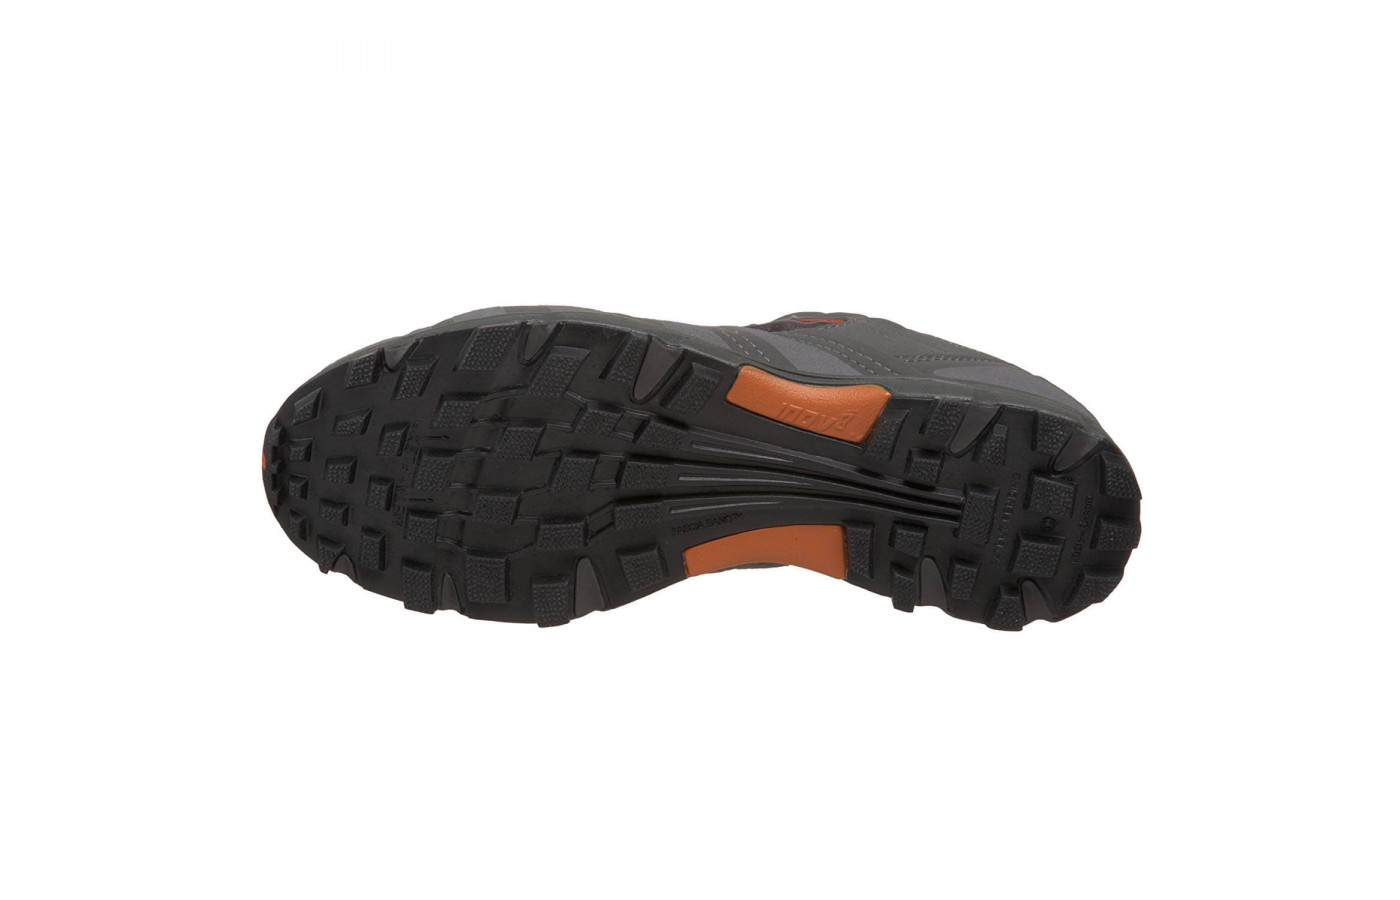 Inov-8 Roclite 315 bottom